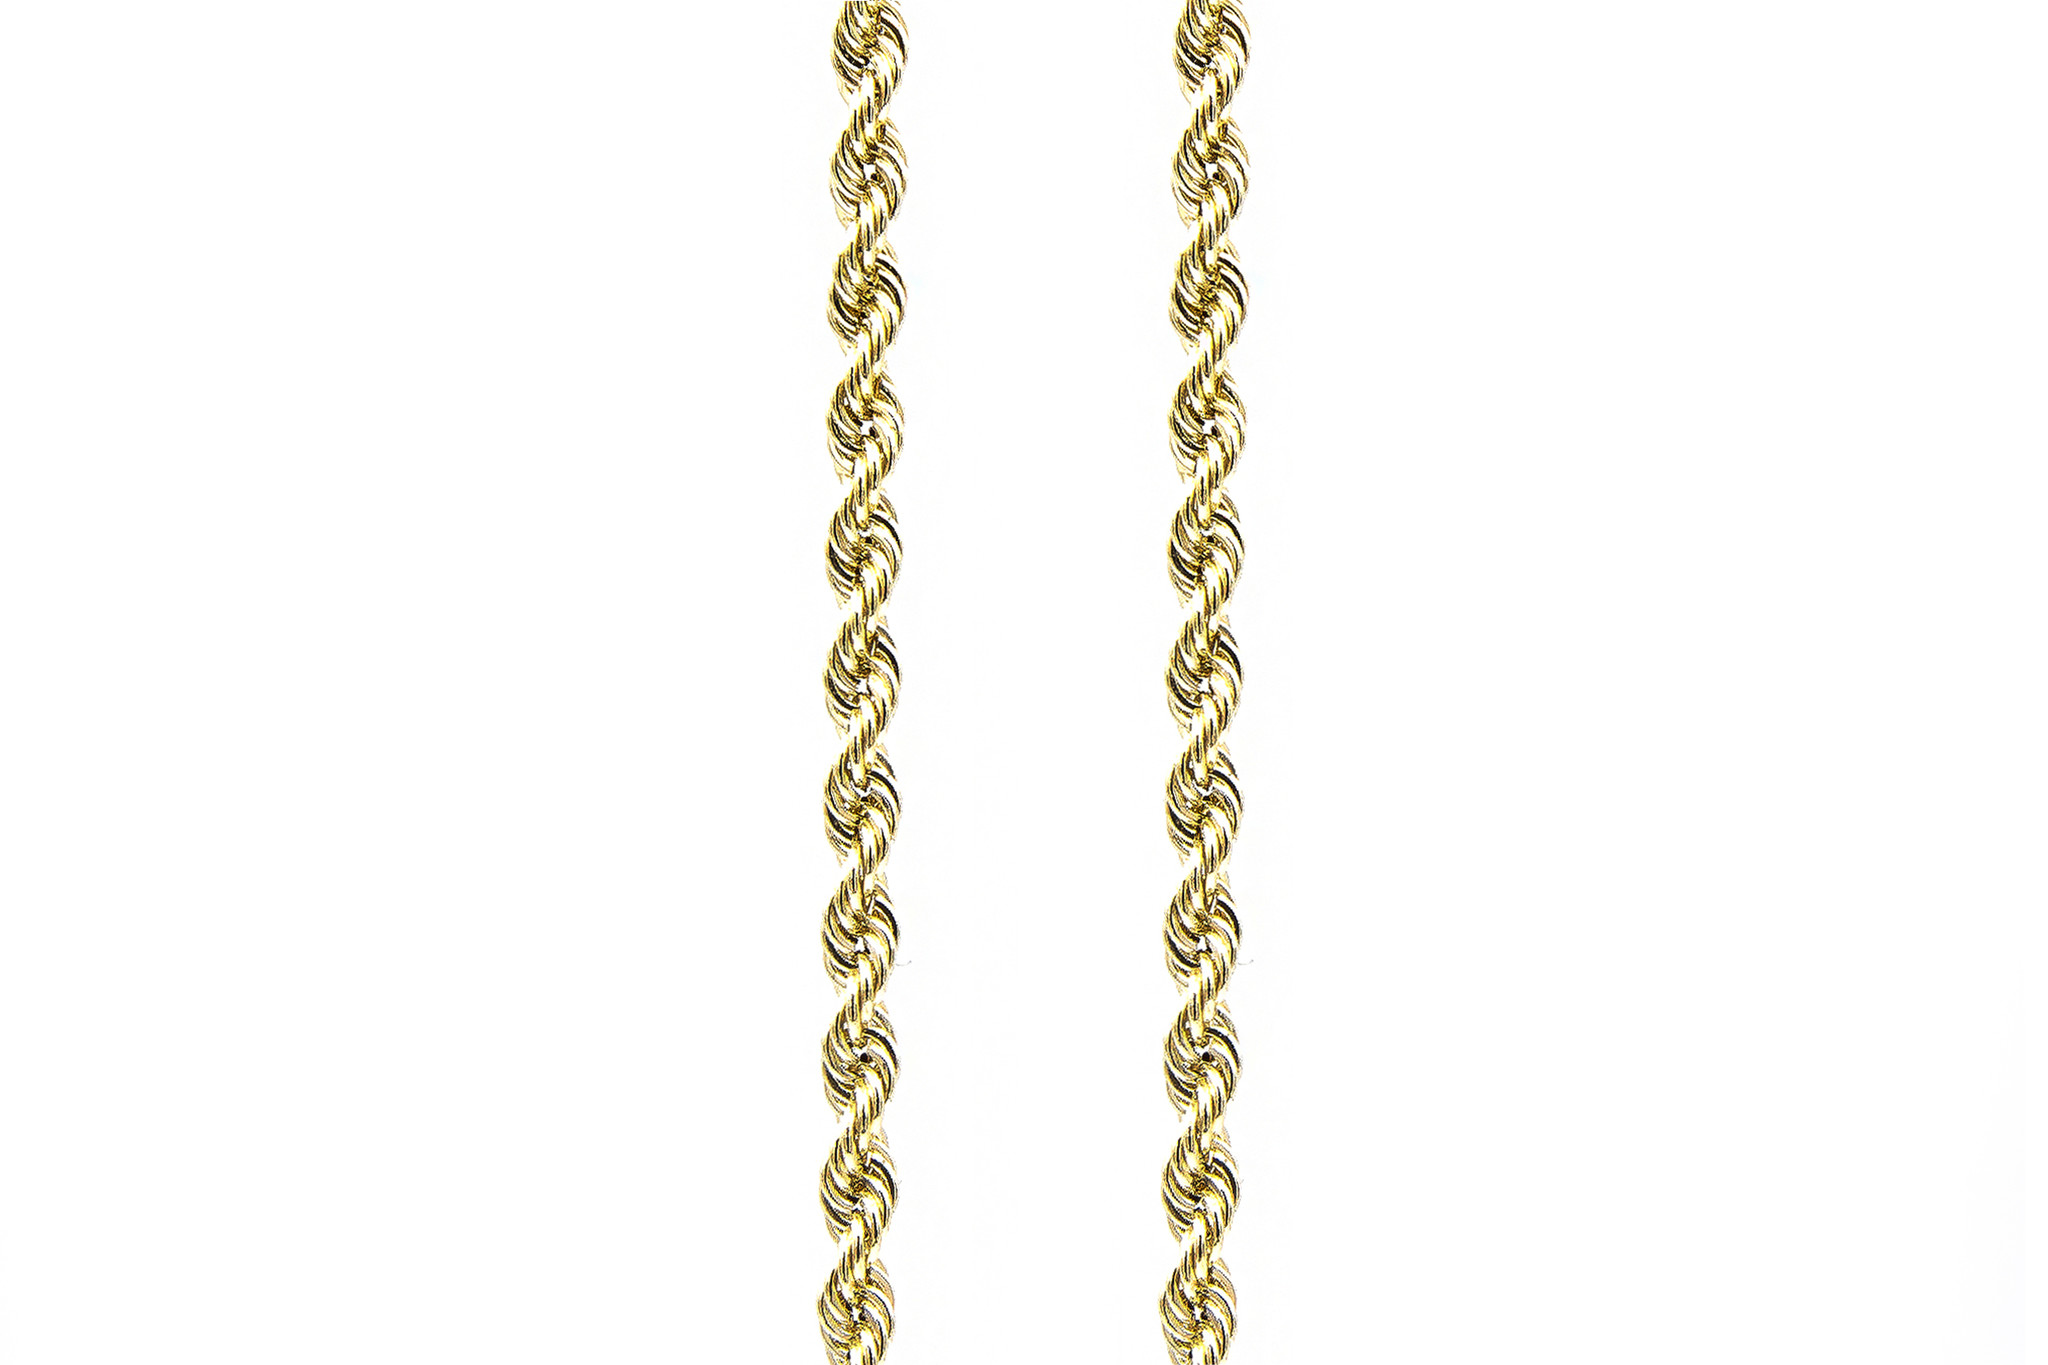 Rope Chain 14k-7 mm-5